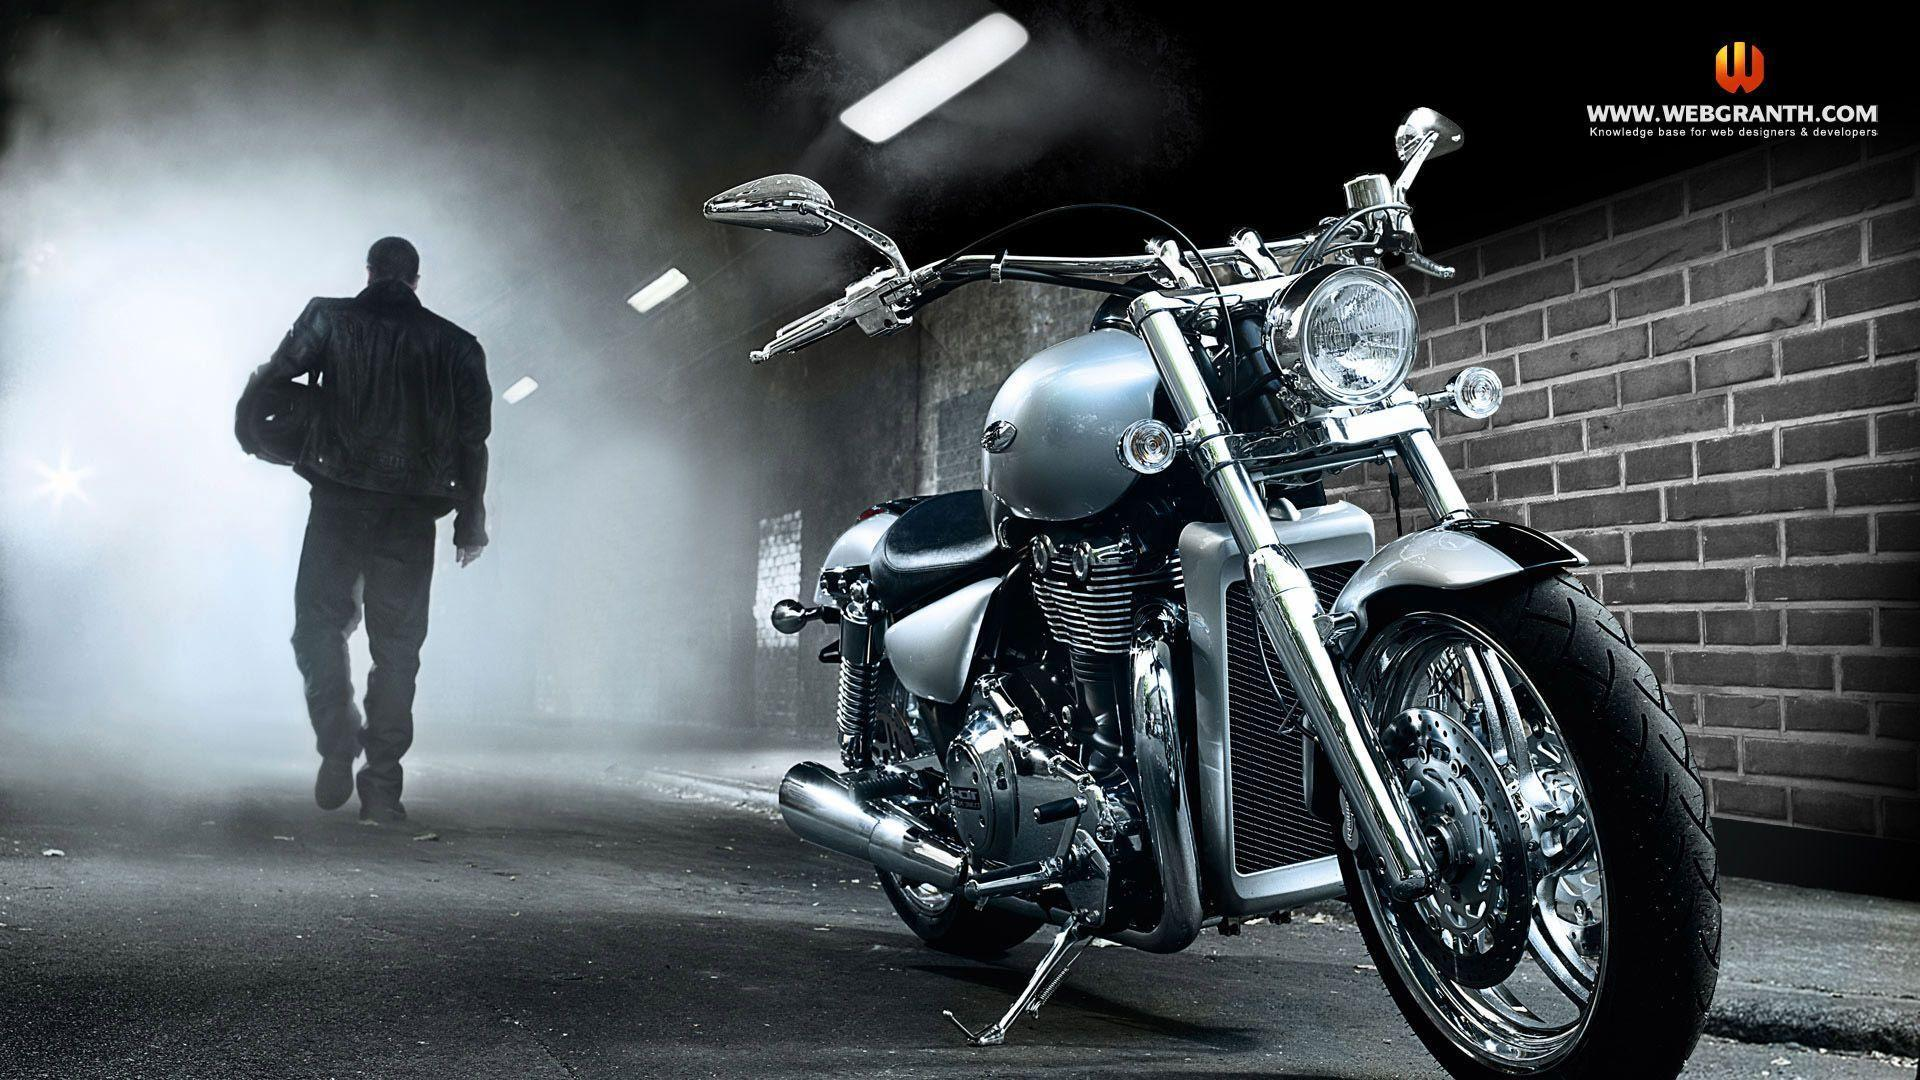 motorcycles photo wallpapers - photo #45